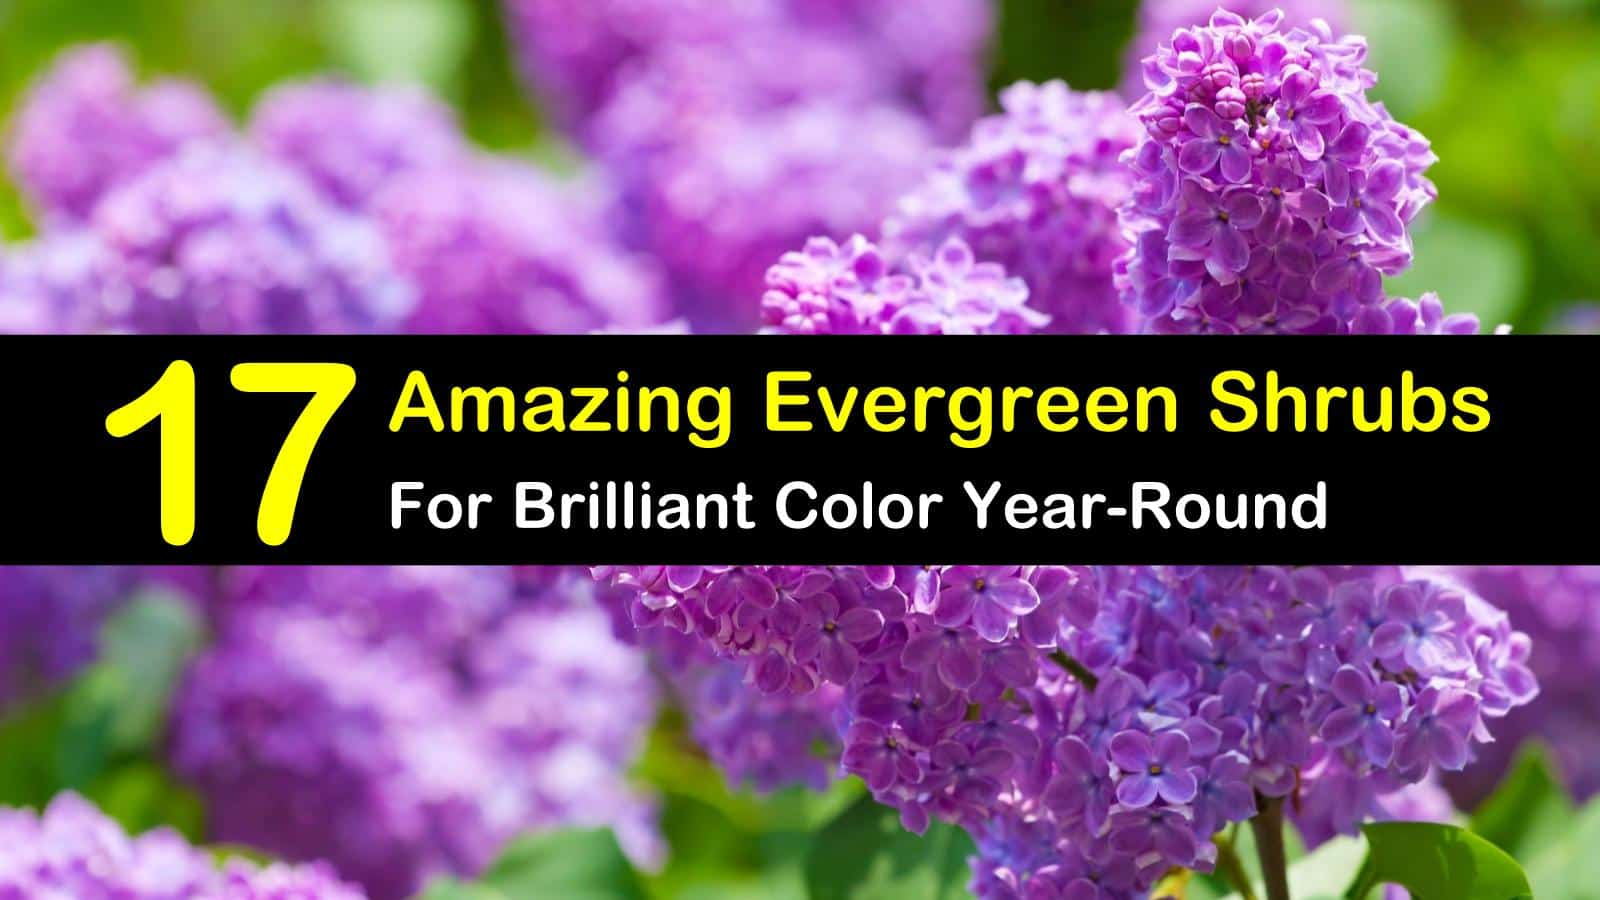 17 Amazing Evergreen Shrubs For Brilliant Color Year Round